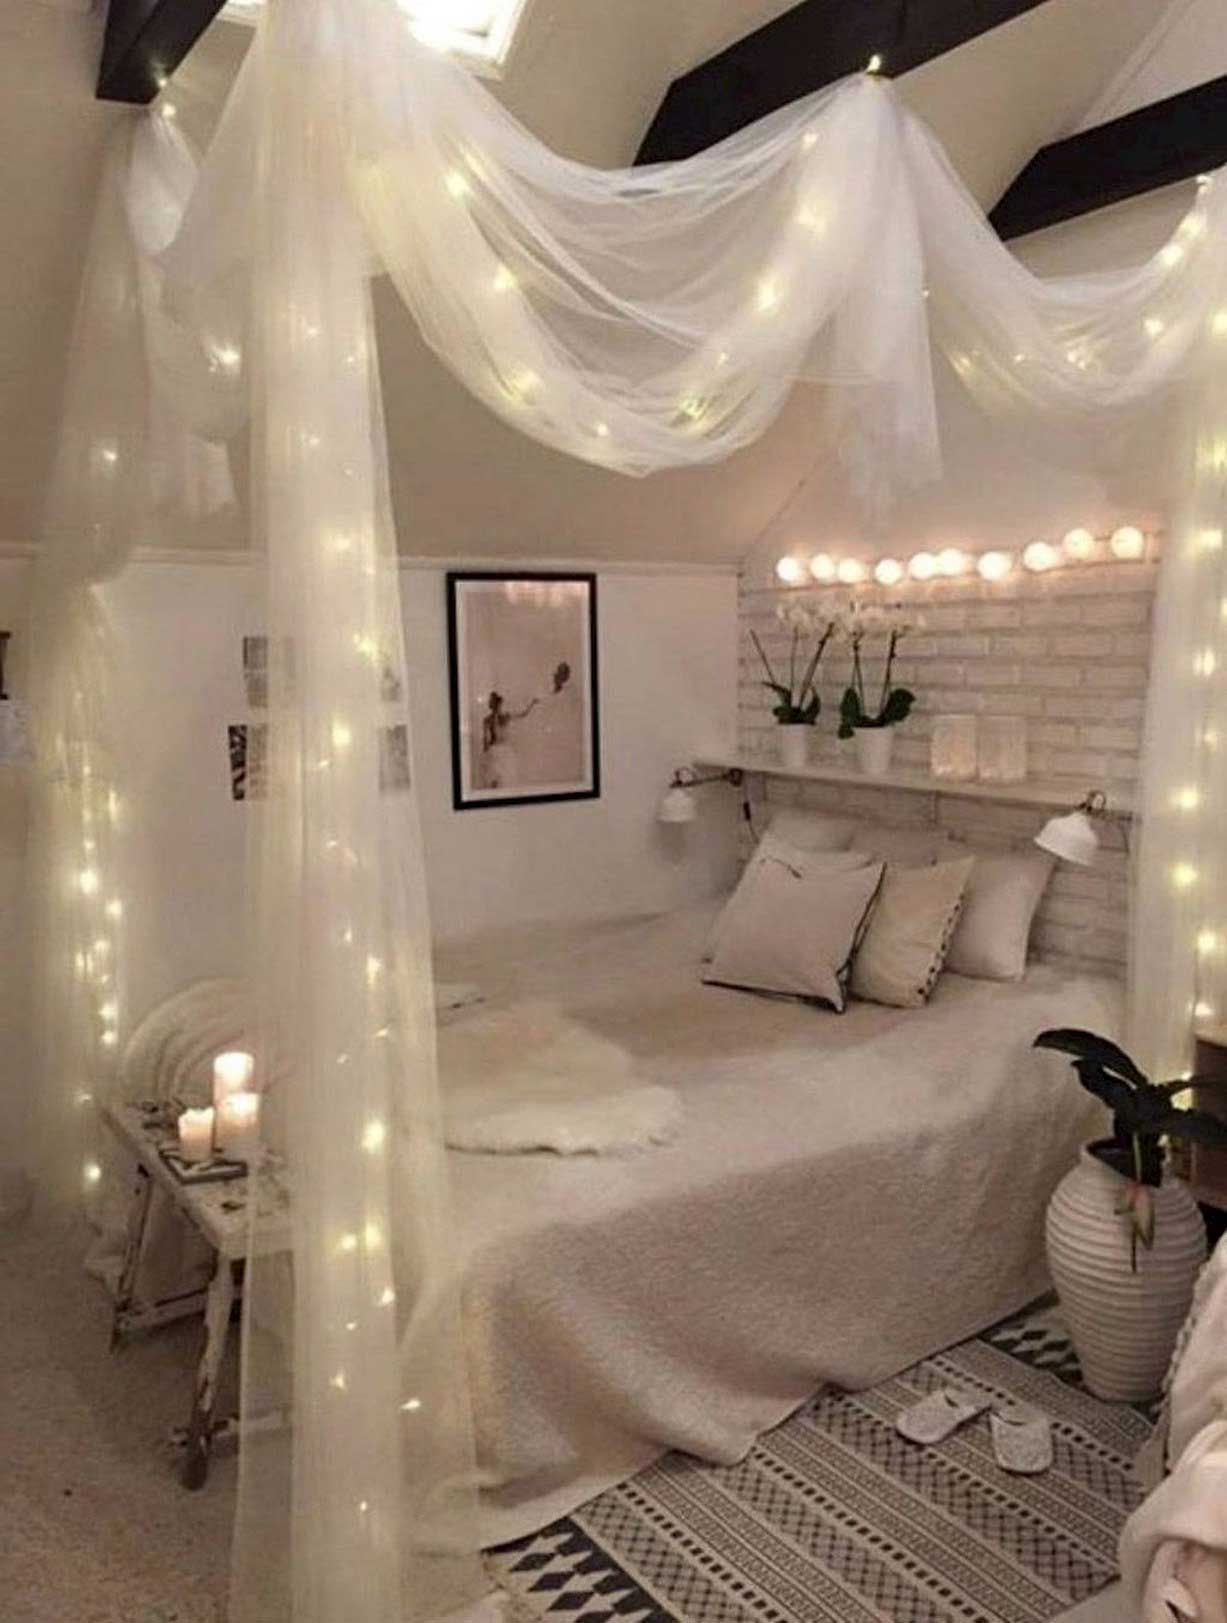 27 Amazing Dorm Room Ideas That Will Transform Your Room 103 Best Home Design Ideas Room Inspiration Bedroom Room Design Bedroom Bedroom Decor